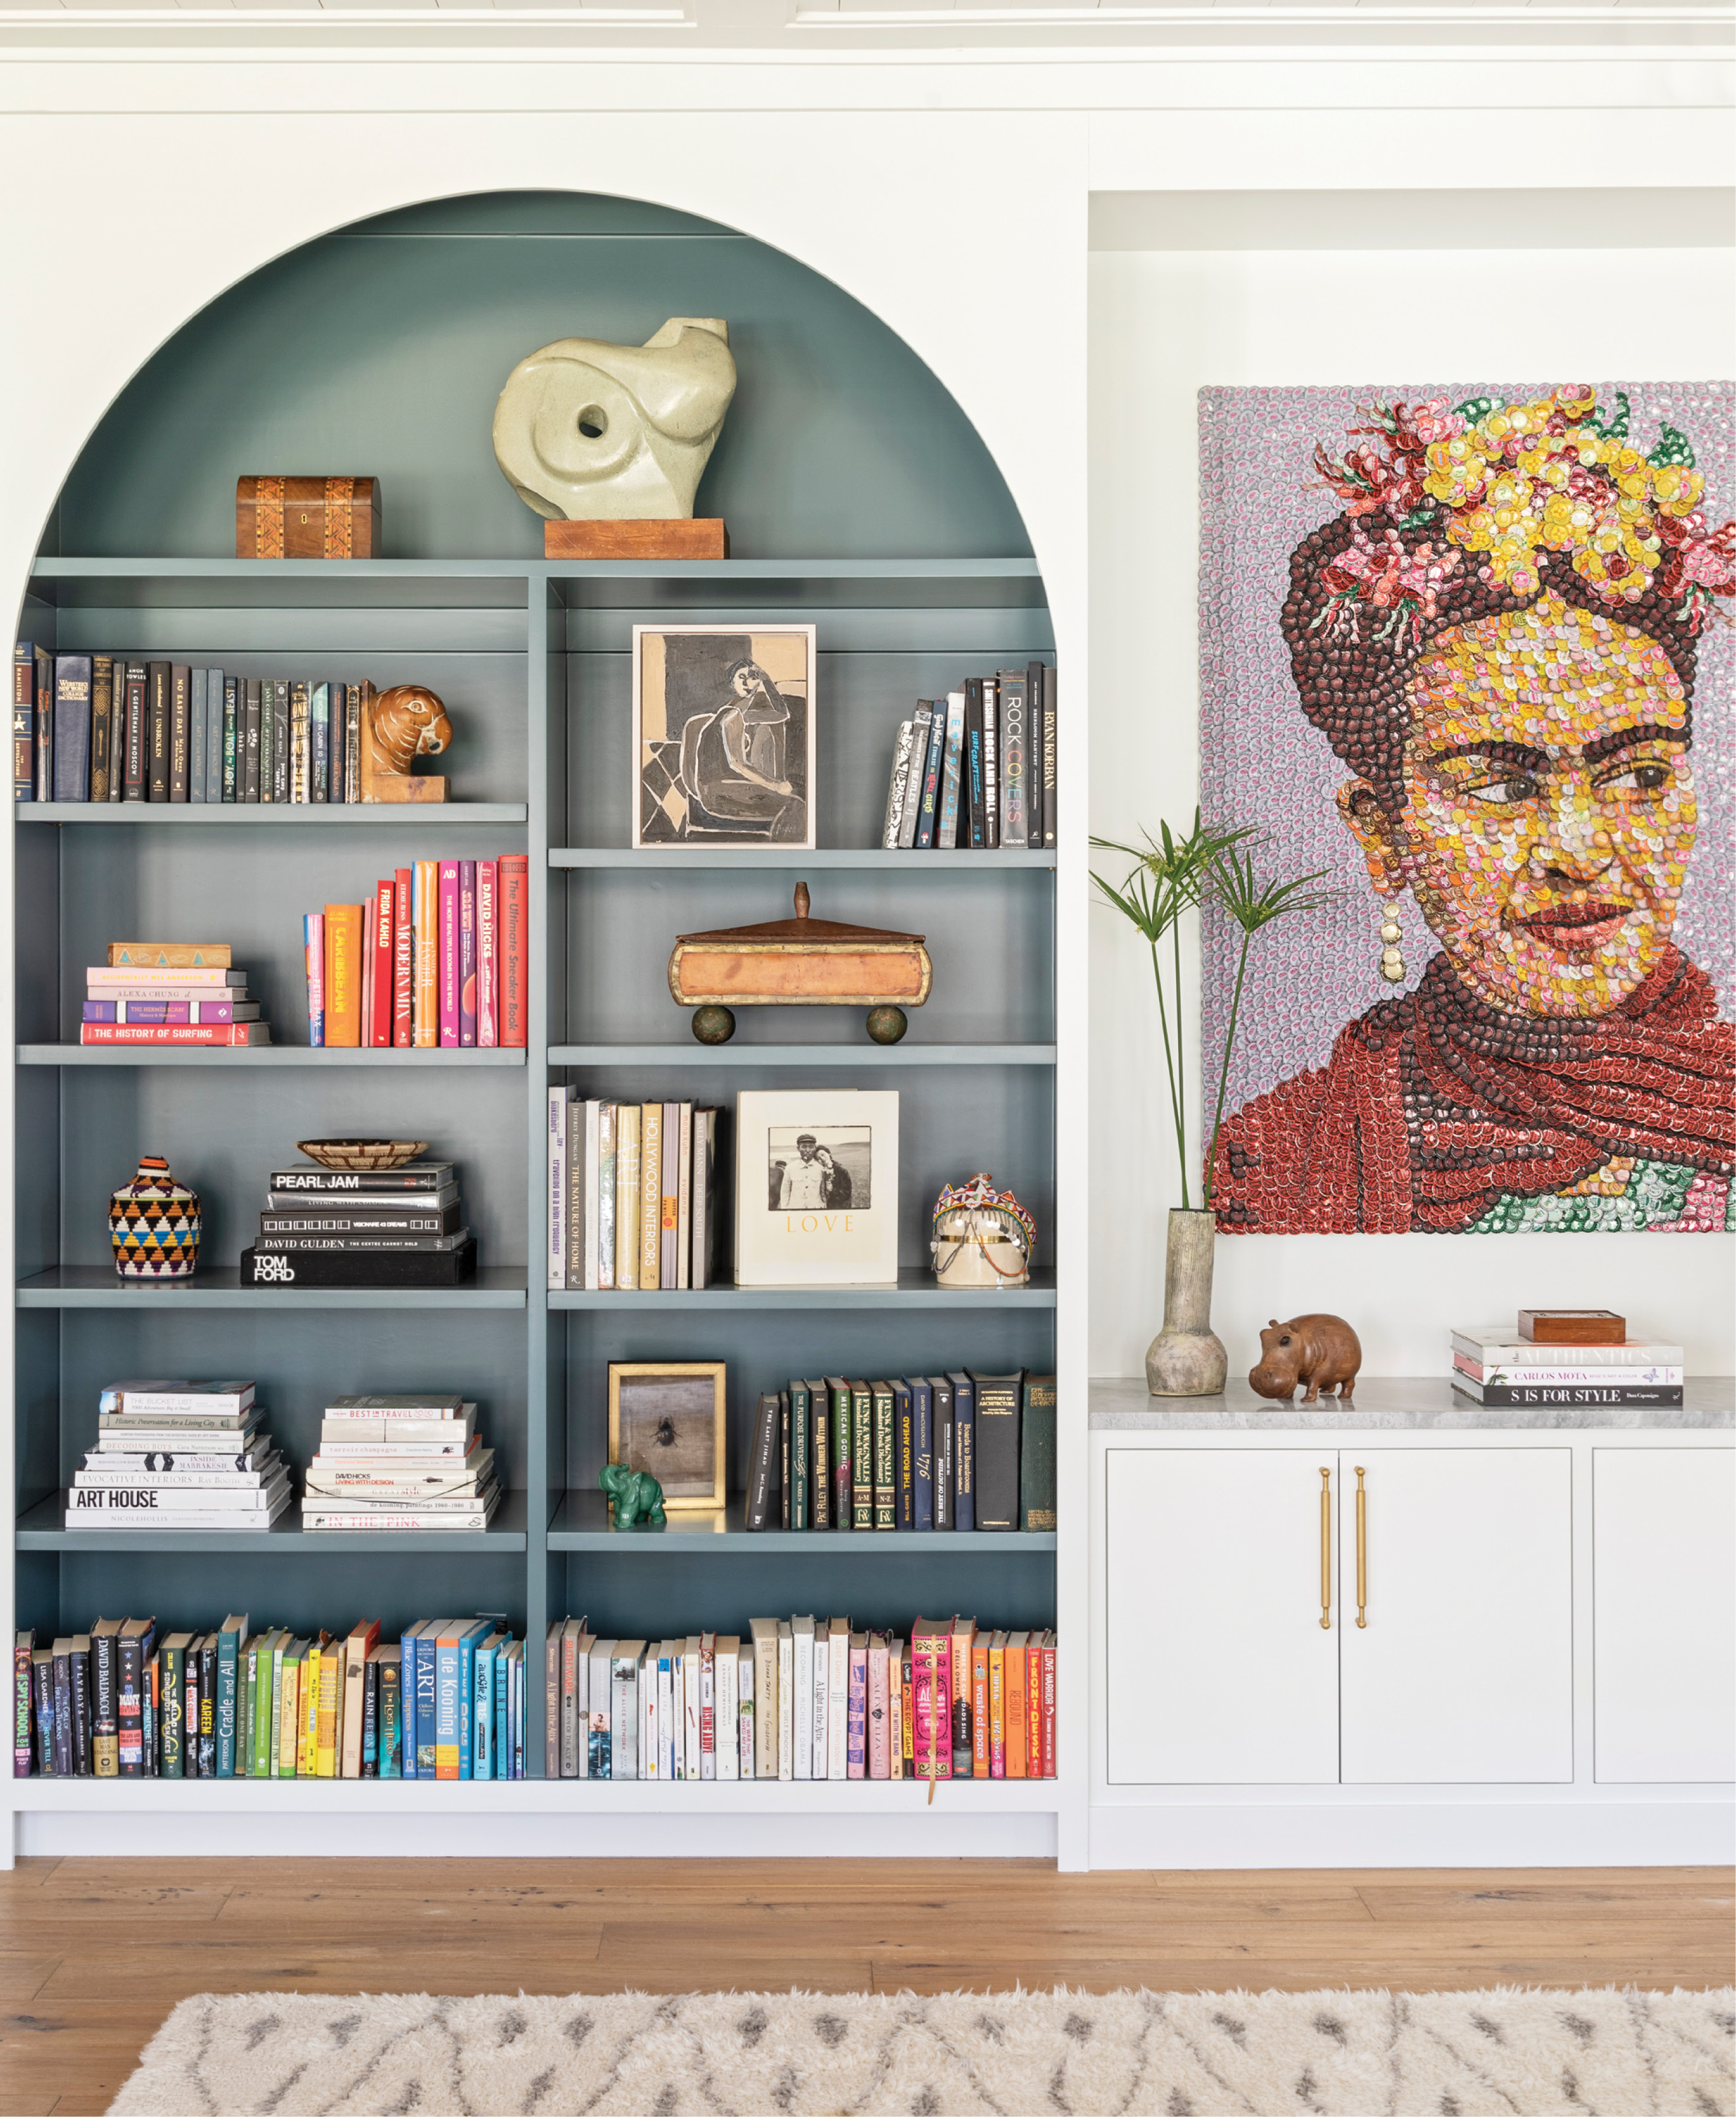 """Top Shelf: Adding built-in bookshelves to the living room brought order to the room while providing a pop of color courtesy of Farrow & Ball's """"Inchyra Blue."""" The custom design also beautifully showcases local artist Molly B. Right's bottle-cap homage to Frida Kahlo. A brass and wicker side table from Hollywood at Home and vintage shearling chair from 1stdibs add texture and dimension."""